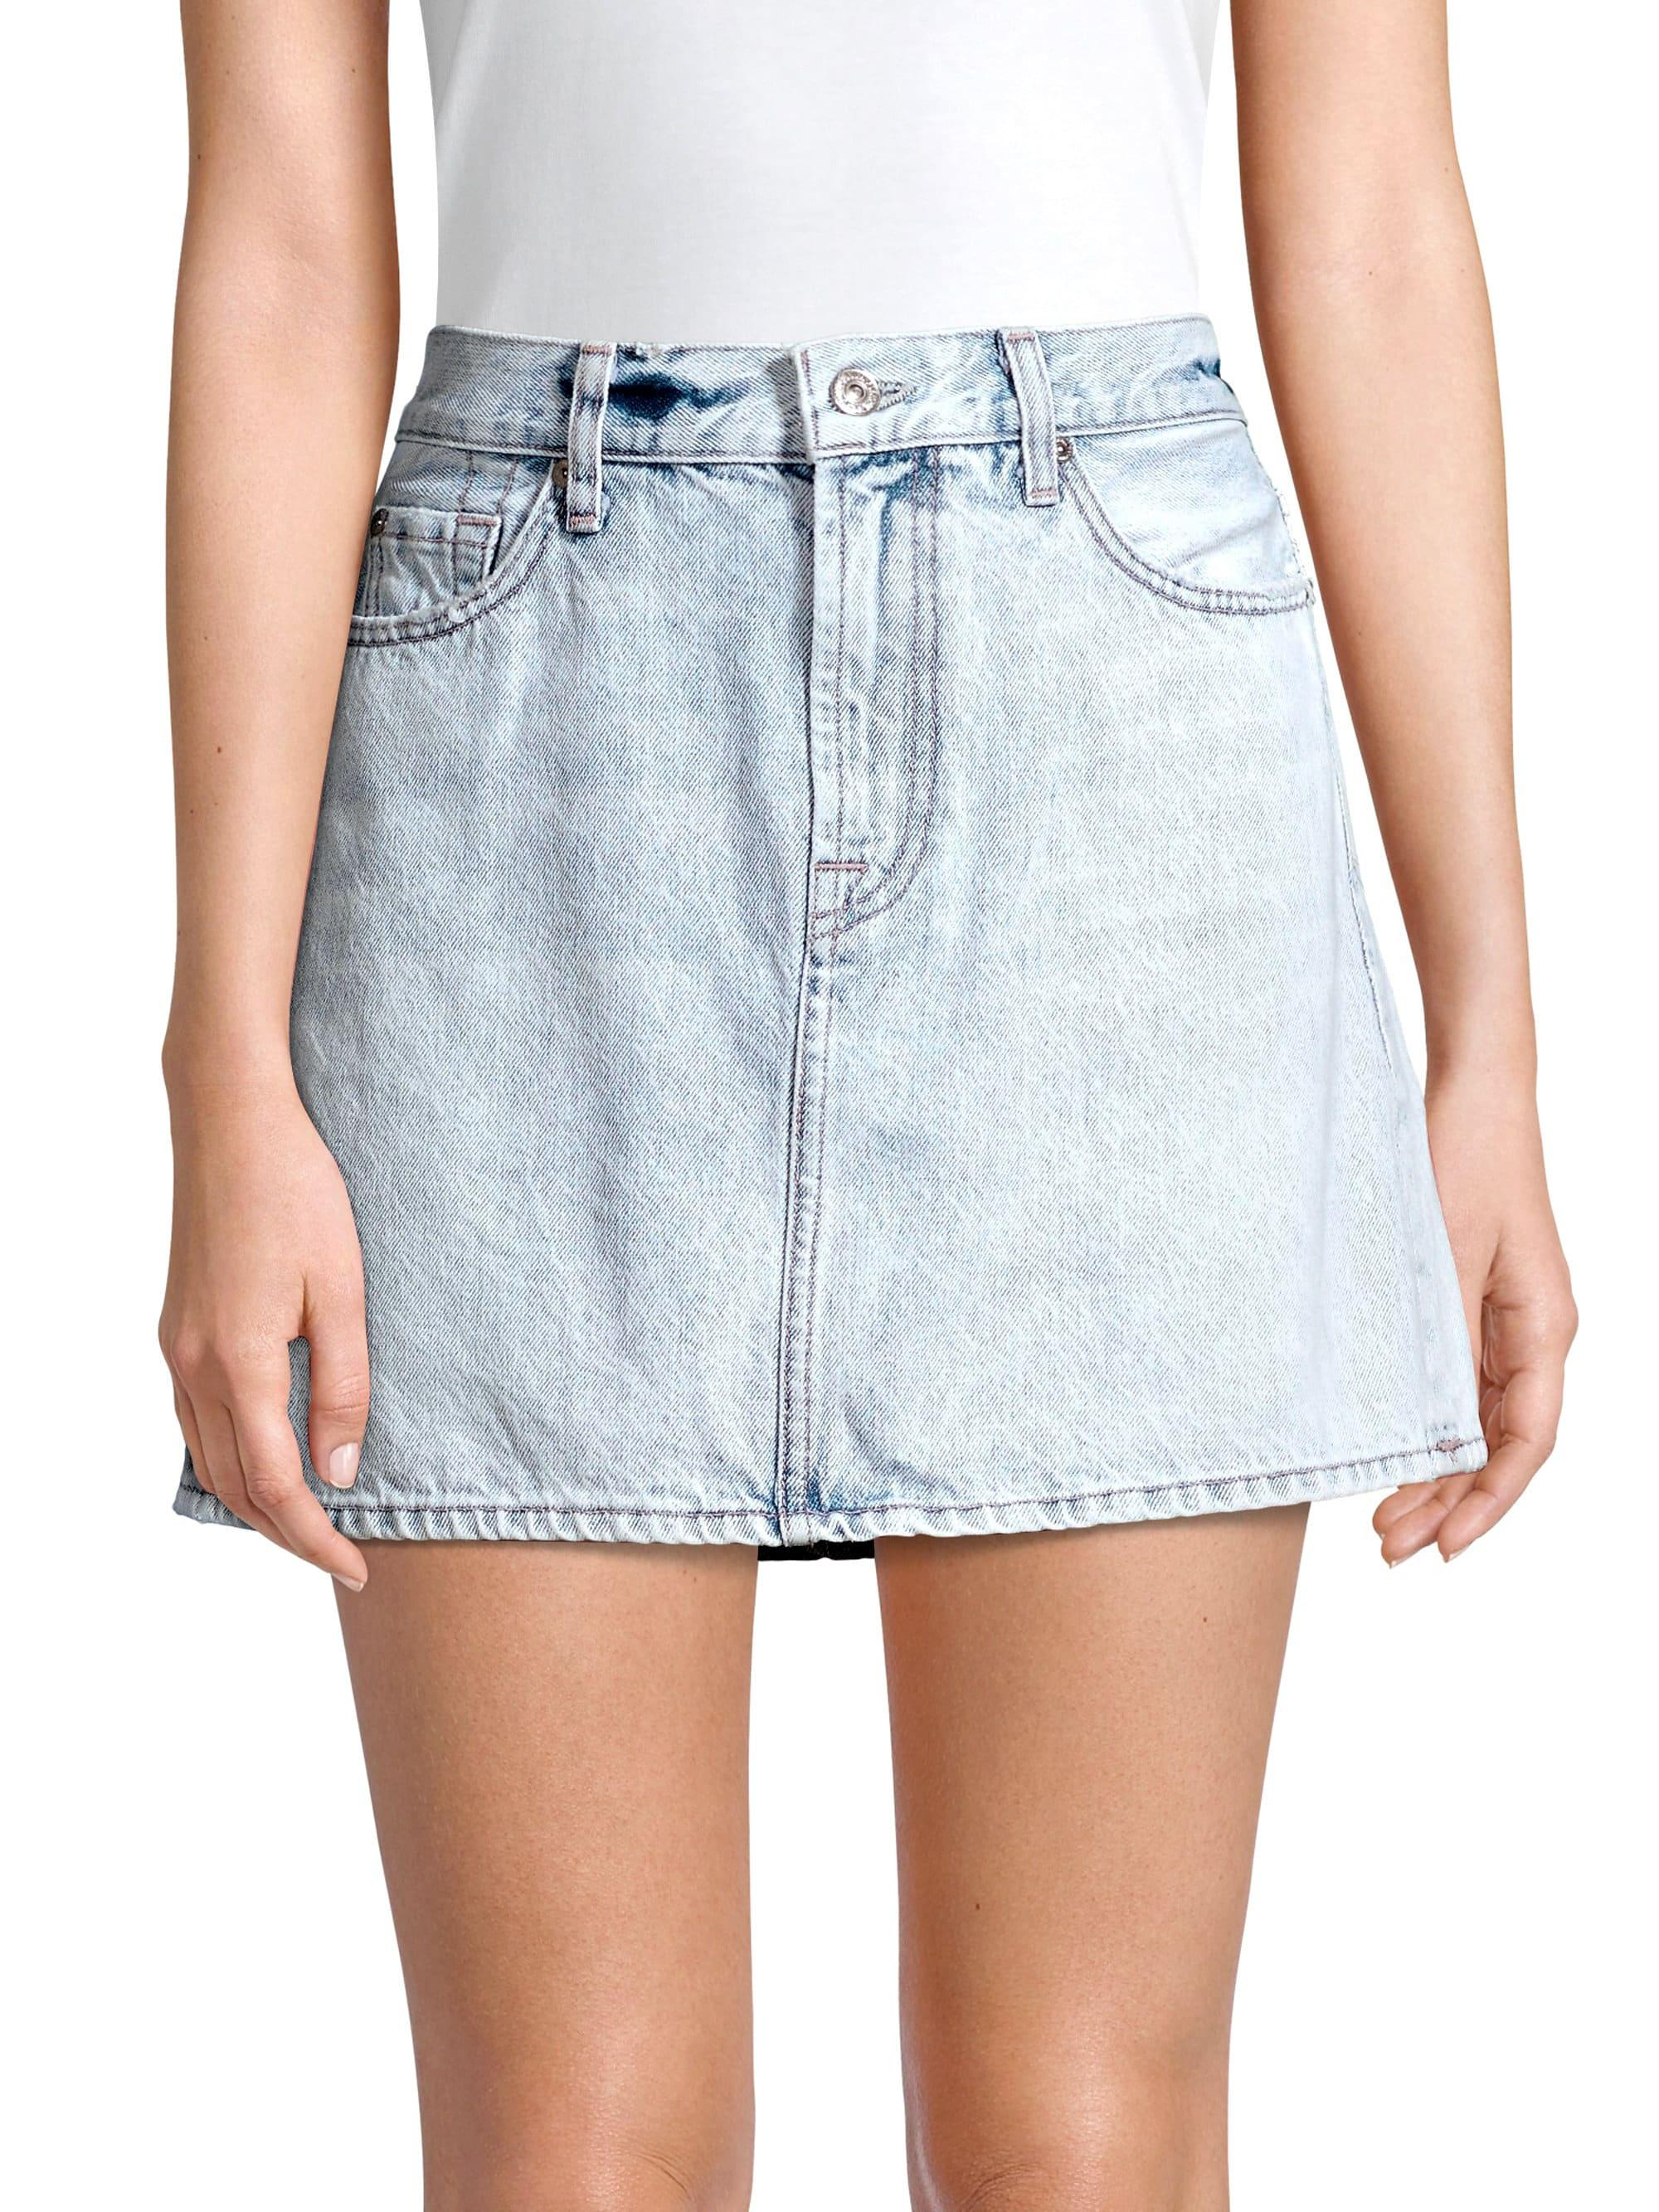 91ecc95cda2c5 Lyst - 7 For All Mankind Acid Wash Denim Mini Skirt in Blue